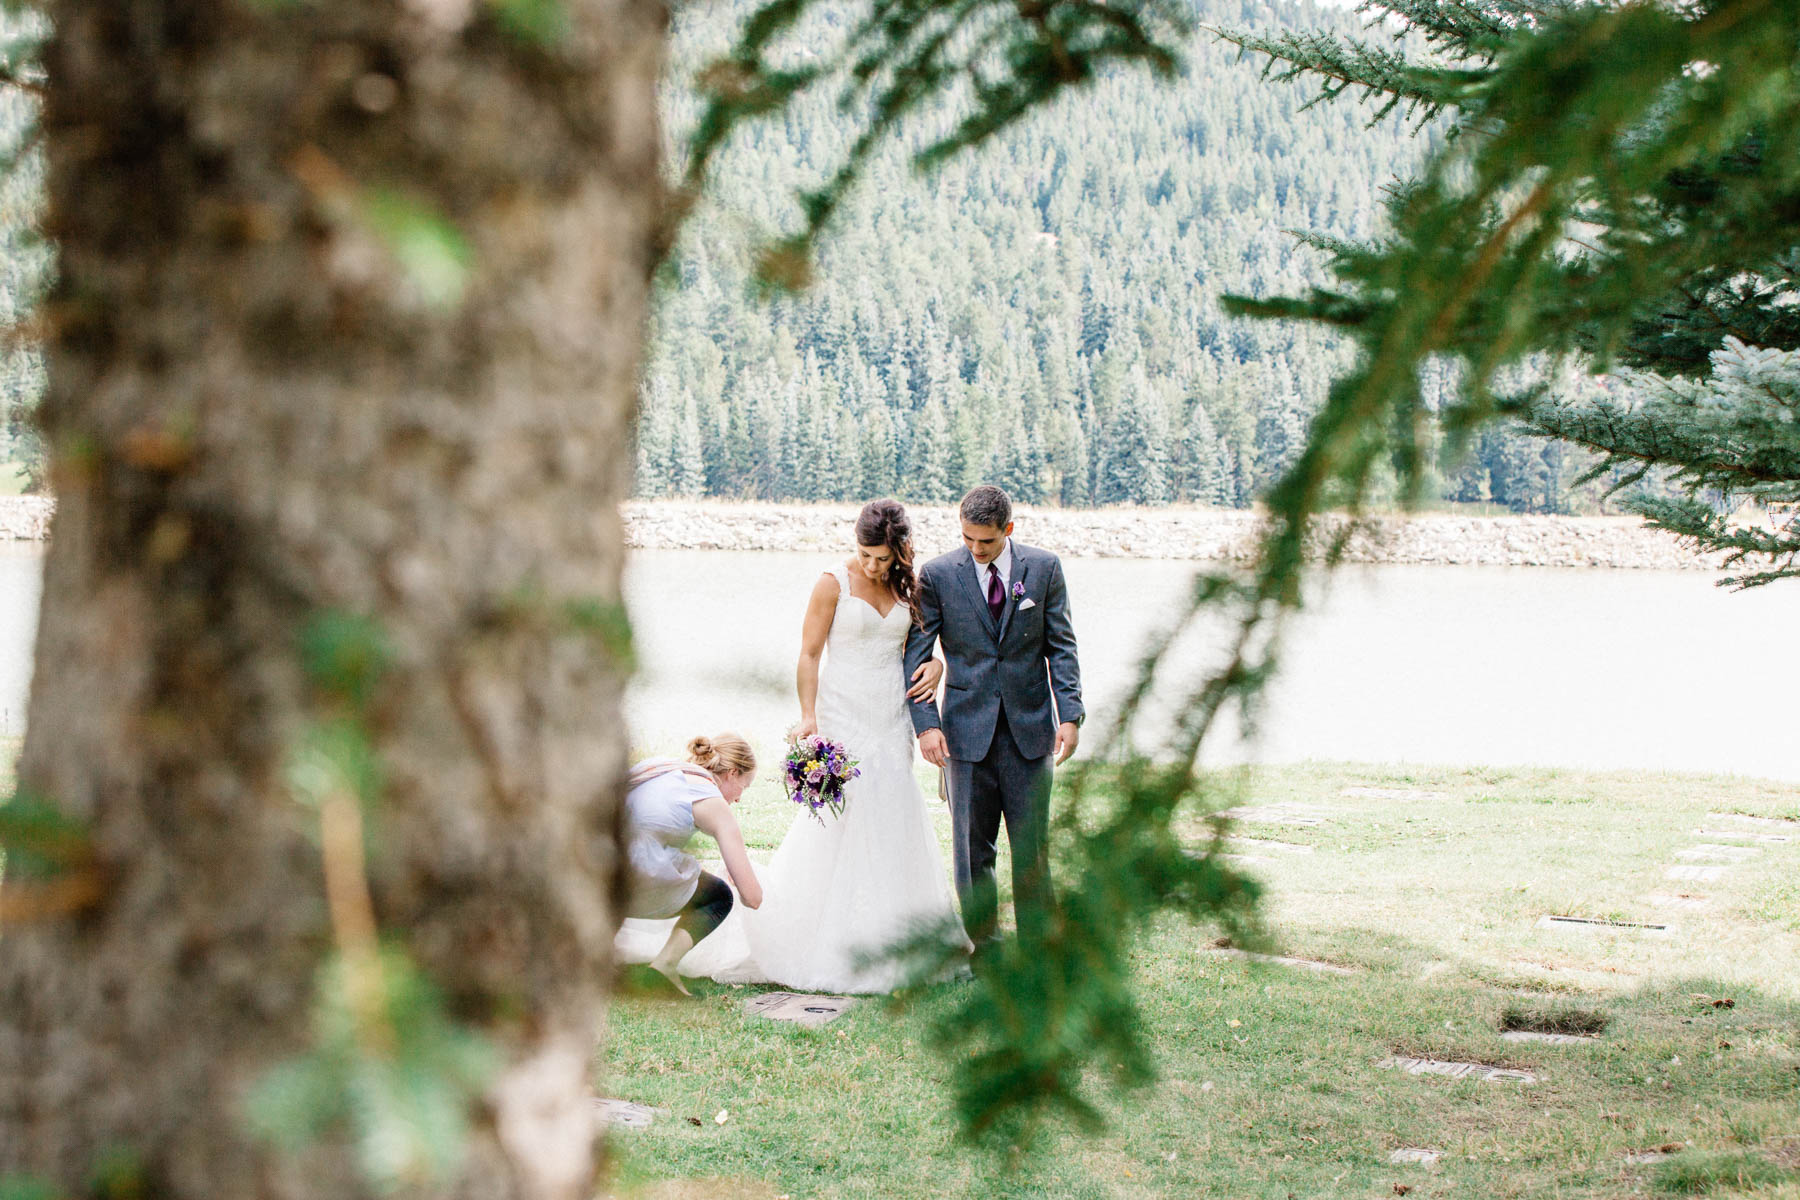 52colorado-mountain-wedding-photographer-denver-colorado-mountain-weddings-intimate-weddings-destination-colorado-rocky-mountain-wedding-photographer_evergreen_barn_wedding_photos_mountain_wedding_photographer_courtney&kirby_2397.jpg